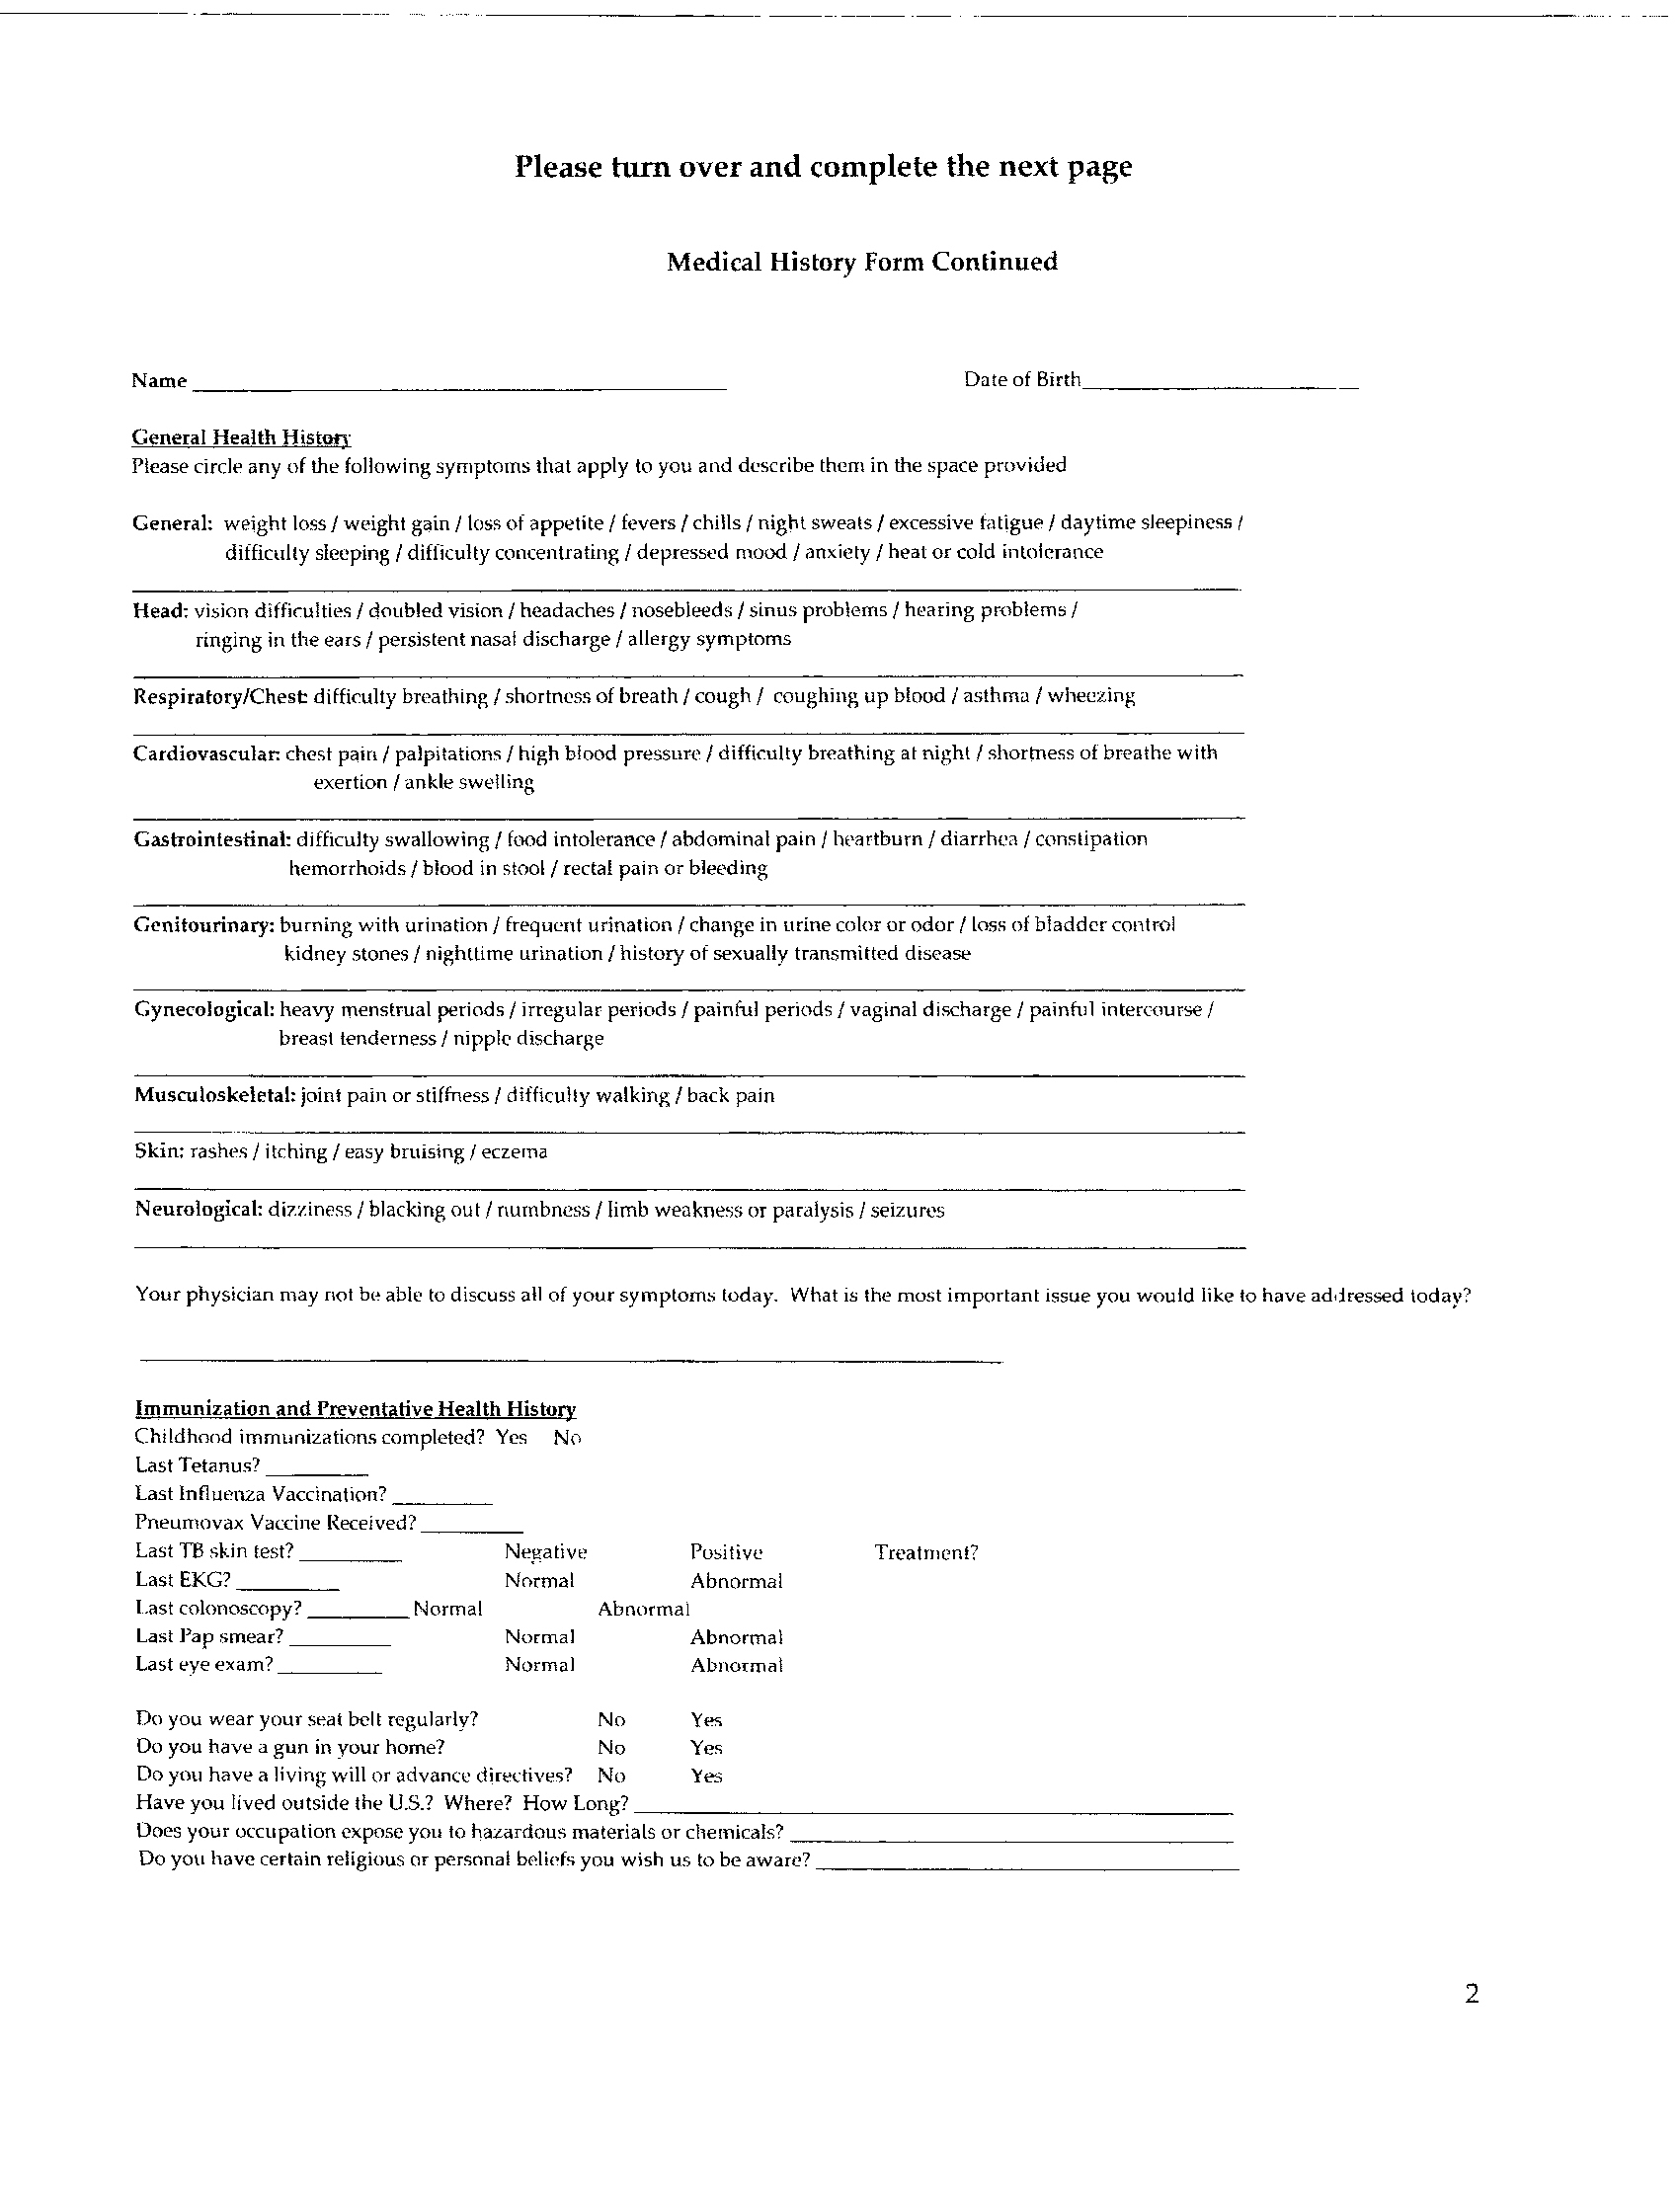 Drdouglaslister medical forms medical history page 2 thecheapjerseys Image collections